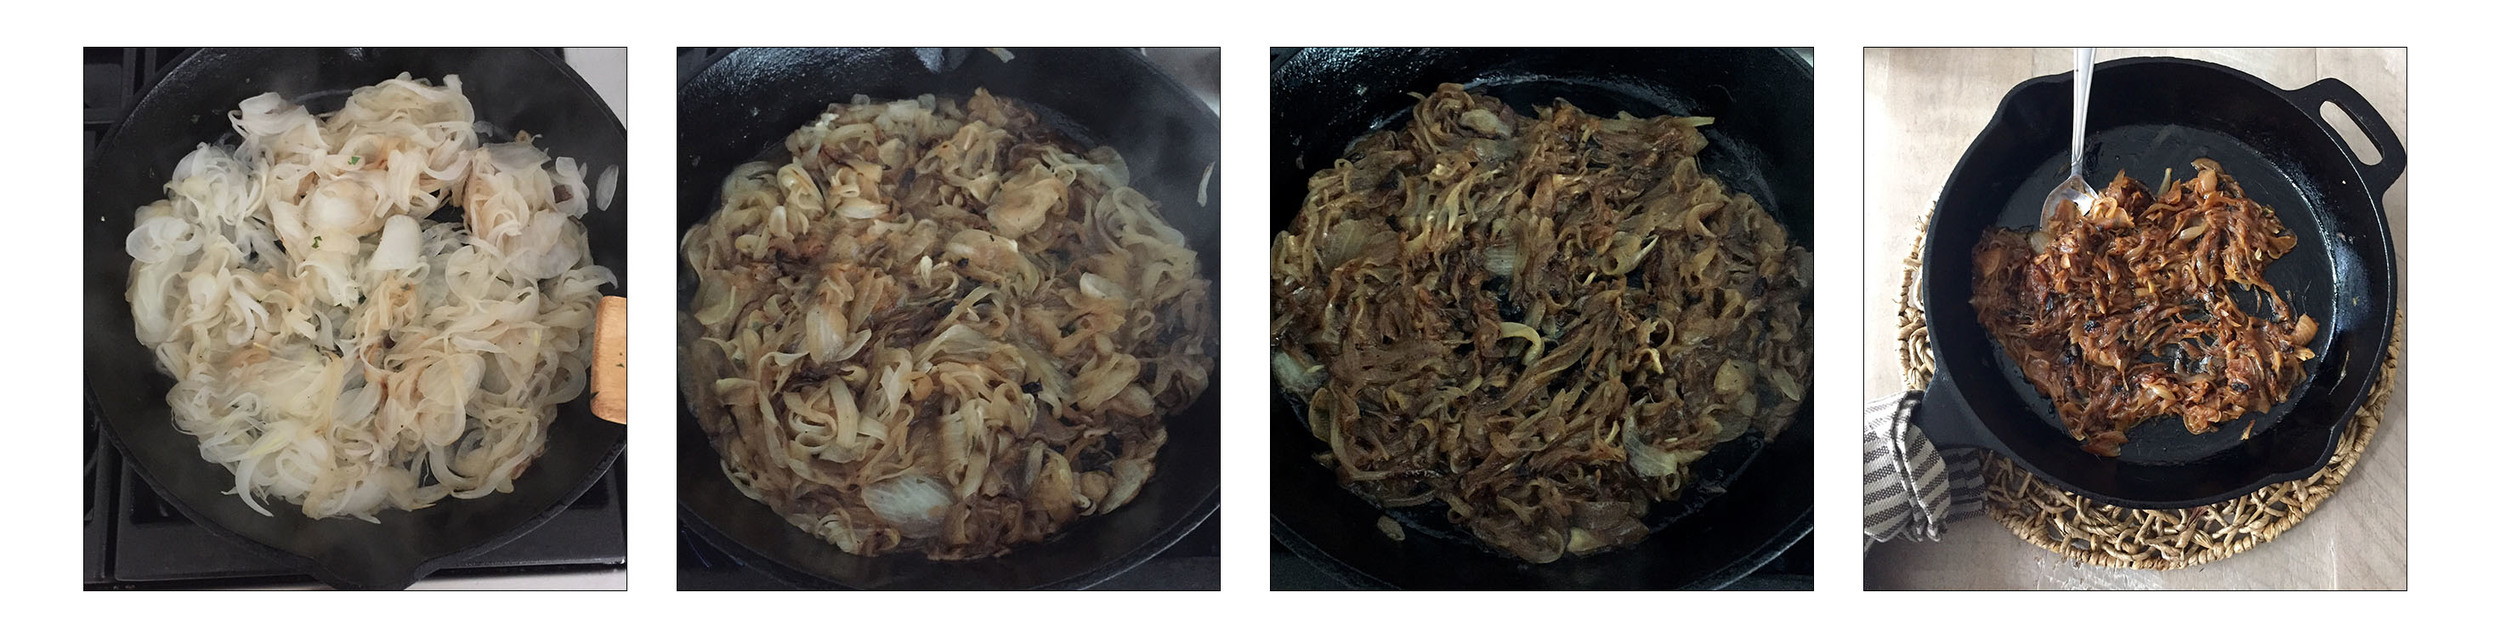 Caramelized Onions, step by step.